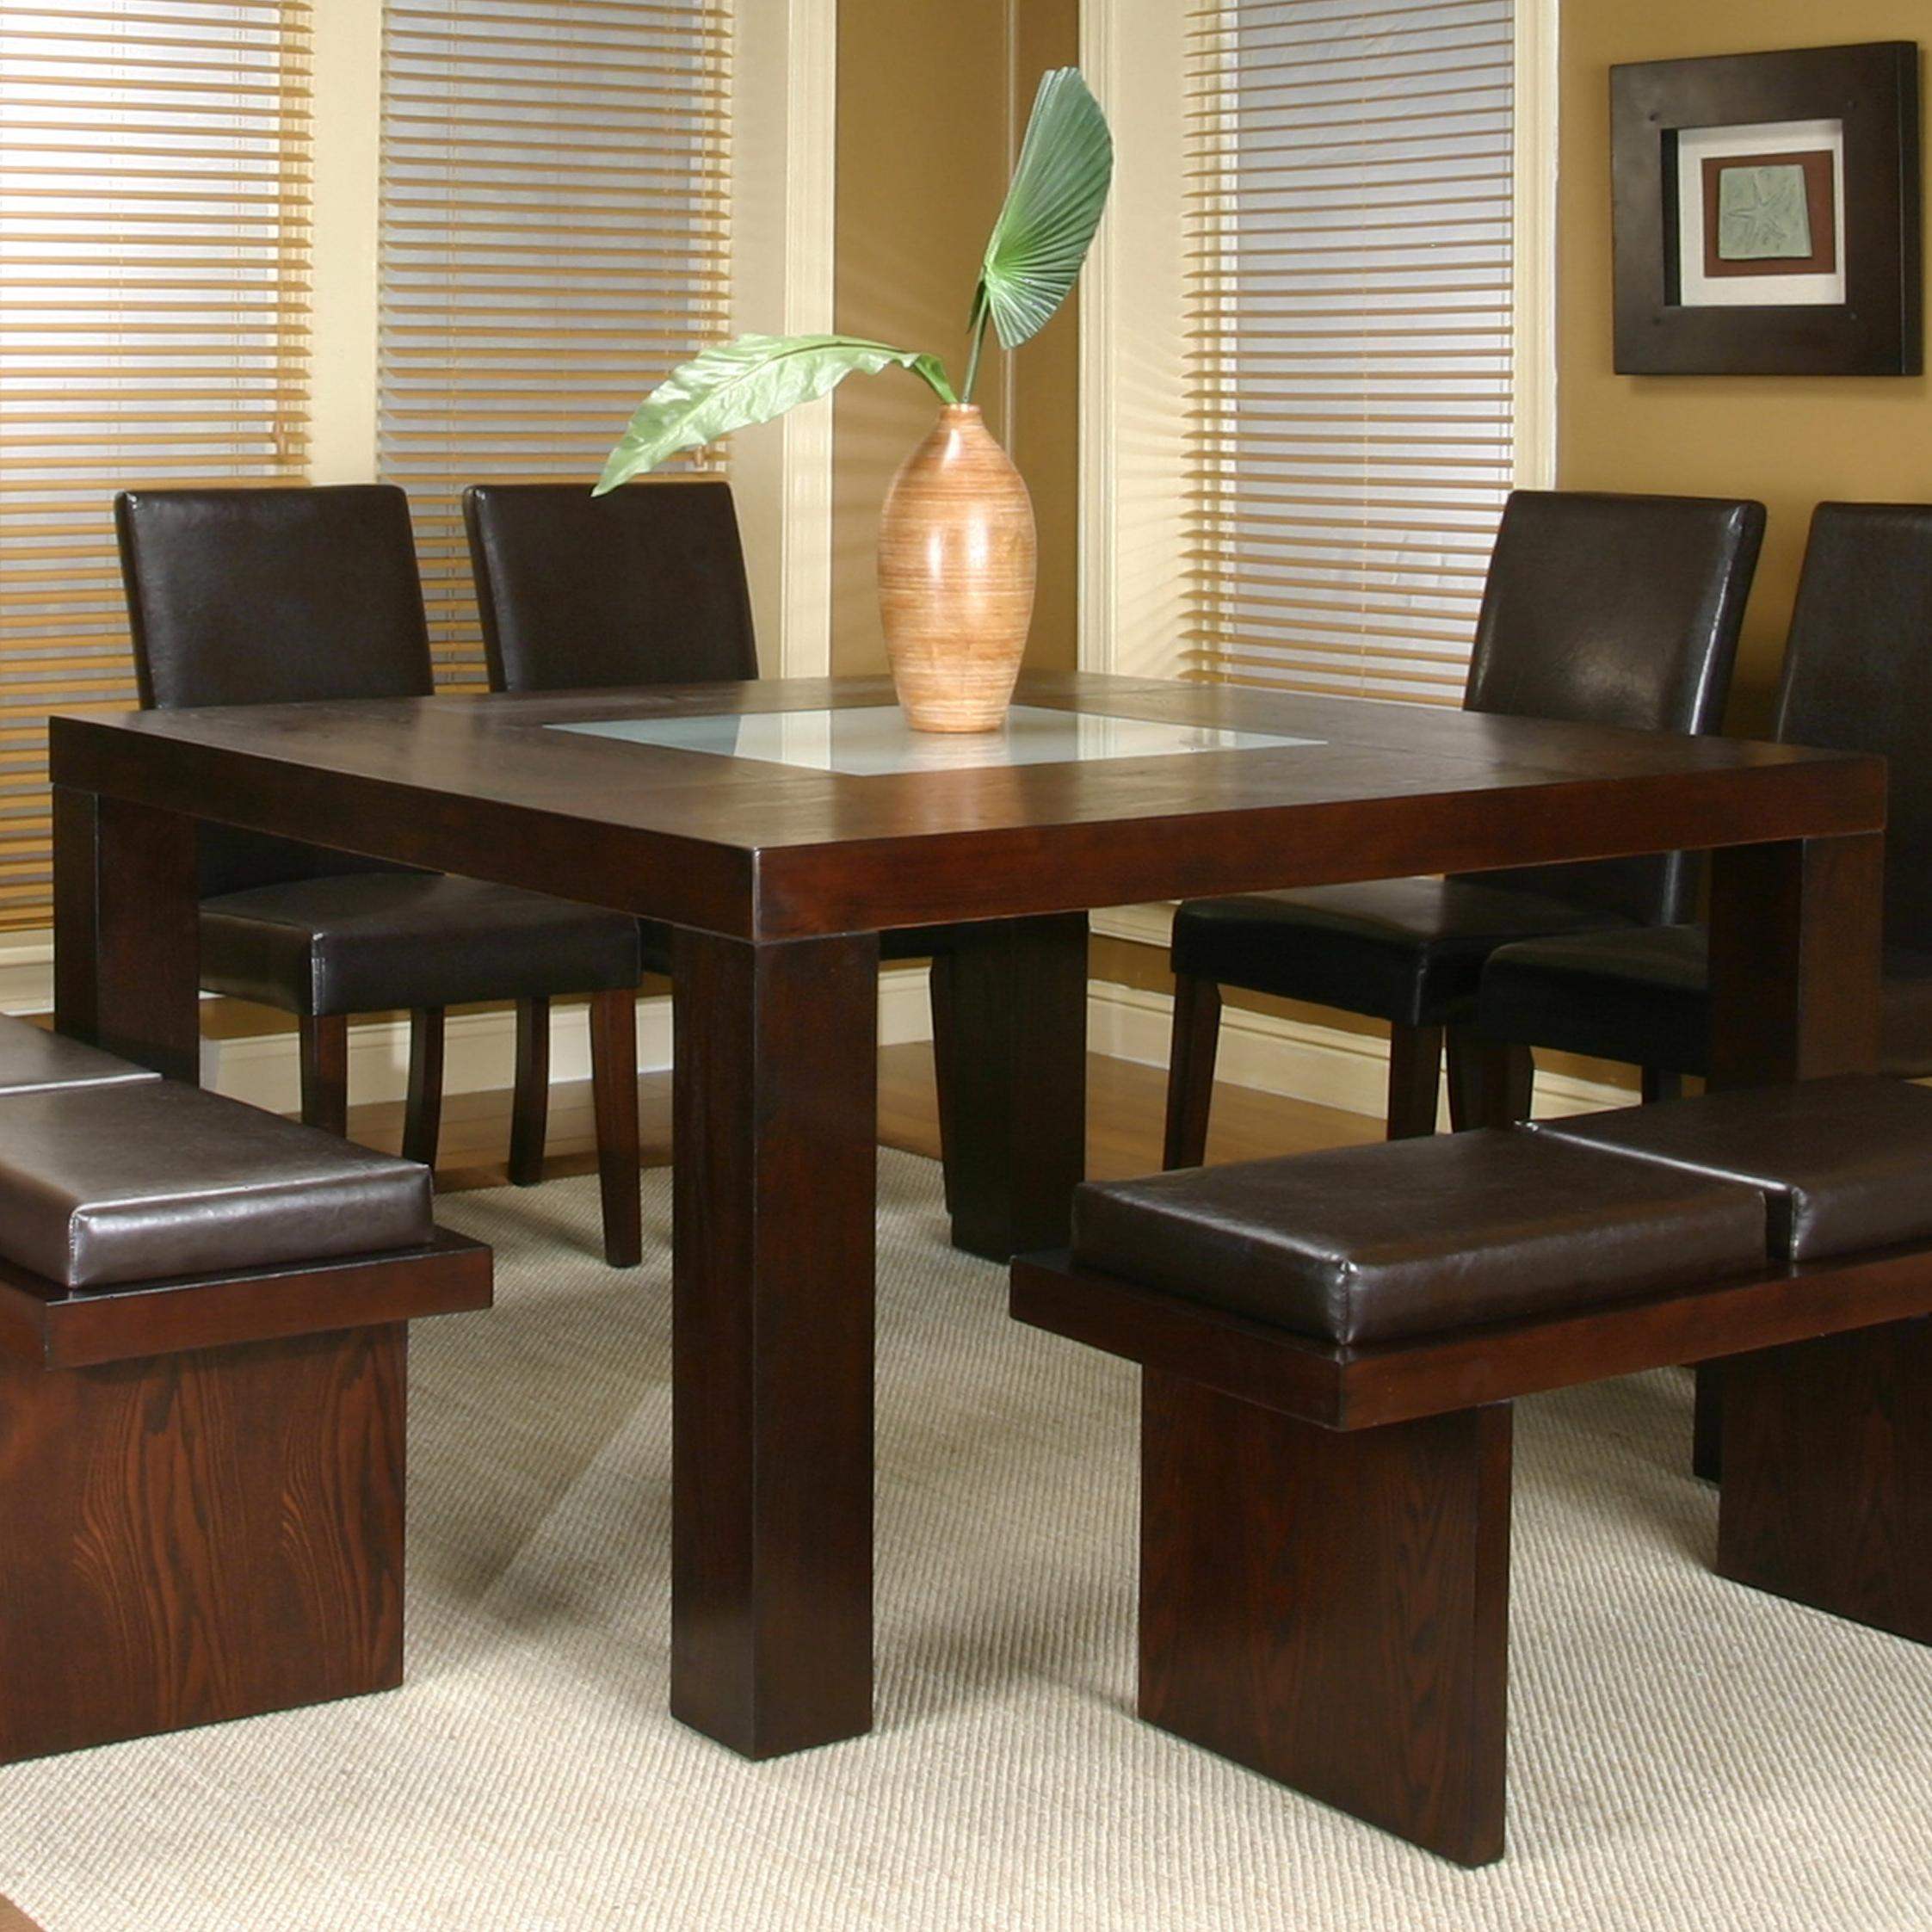 Square Dining Table with Frosted Glass Insert : products2Fcramco2Cinc2Fcolor2Fkemper25310 632B61 b from wolffurniture.com size 2245 x 2245 jpeg 432kB